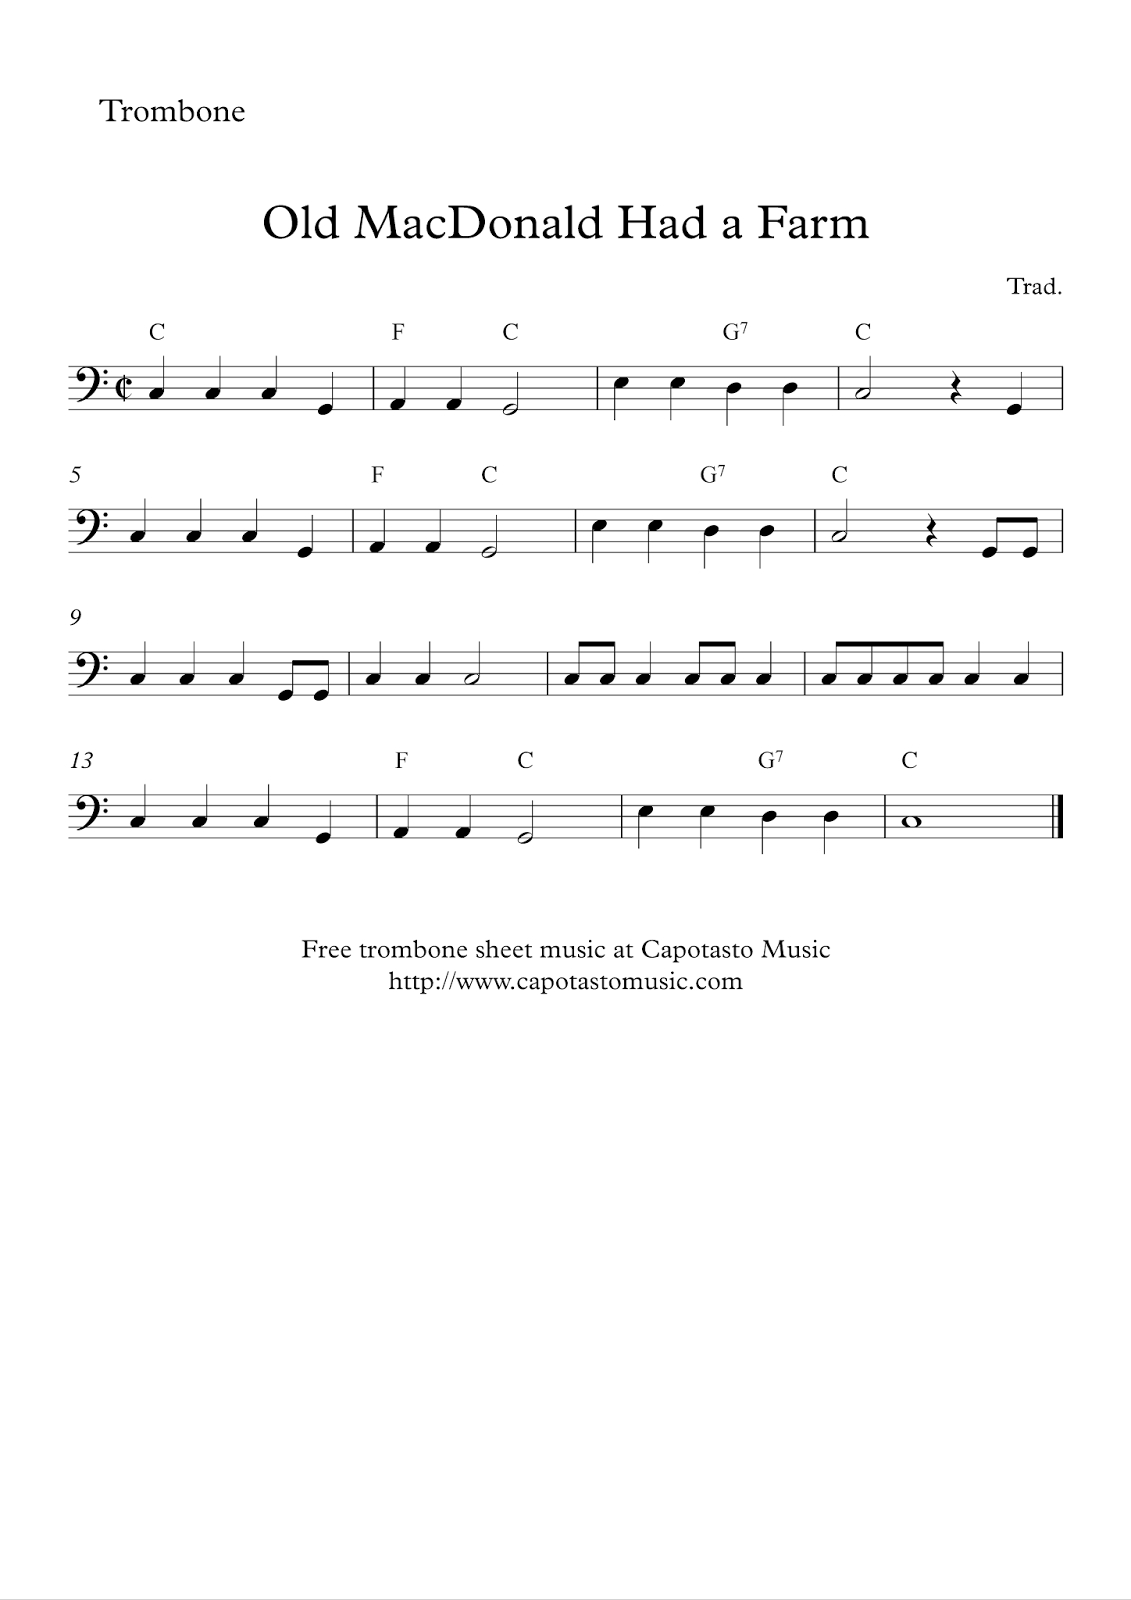 Free Easy Trombone Sheet Music - Old Macdonald Had A Farm - Sheet Music For Trombone Free Printable